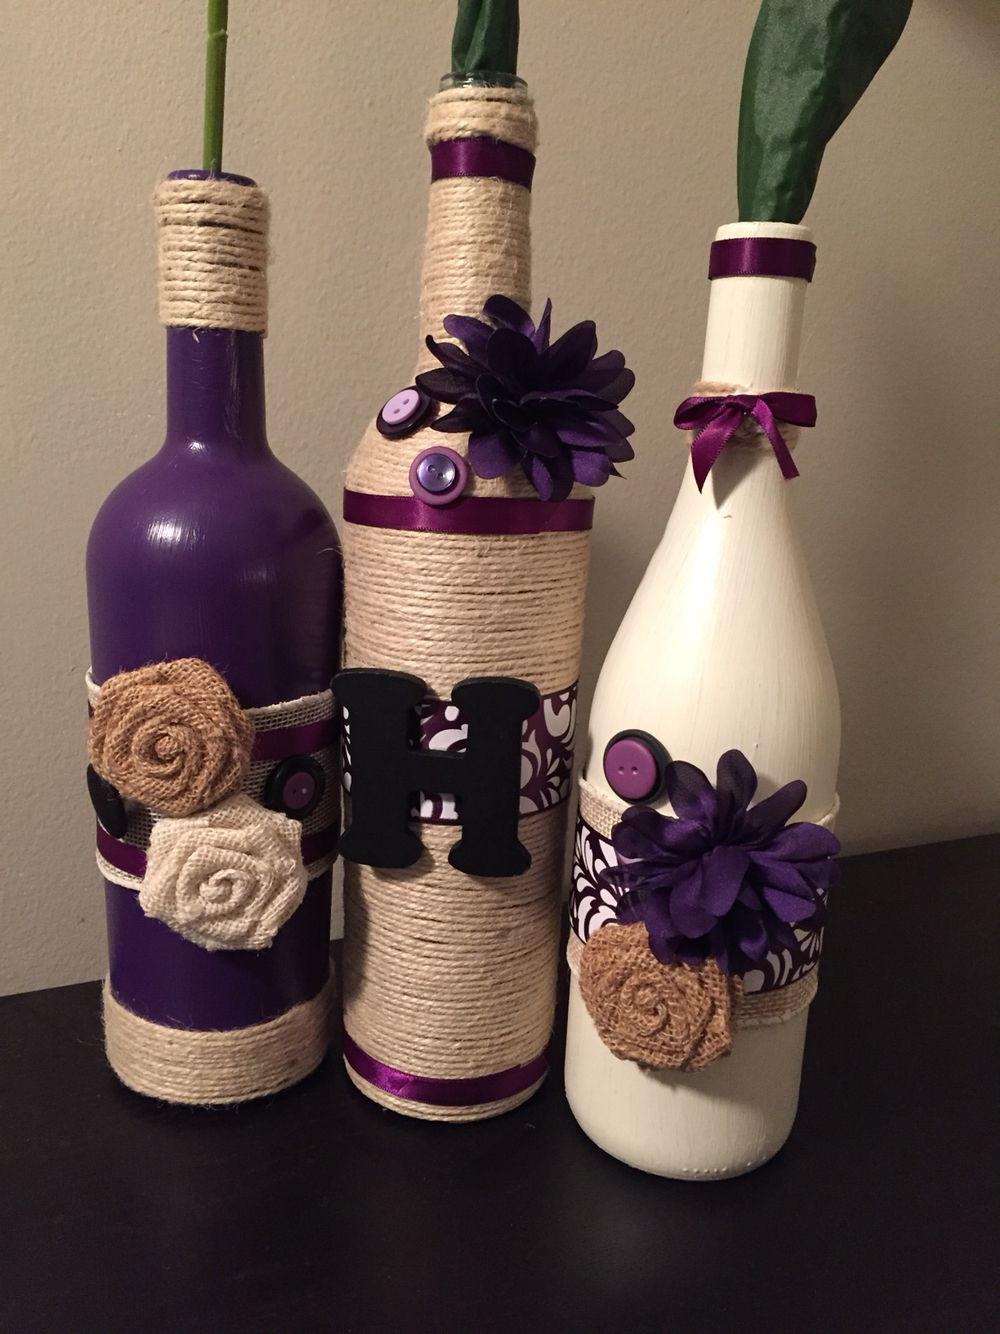 Diy wine bottle crafts pinterest successes pinterest for How to make wine bottle crafts